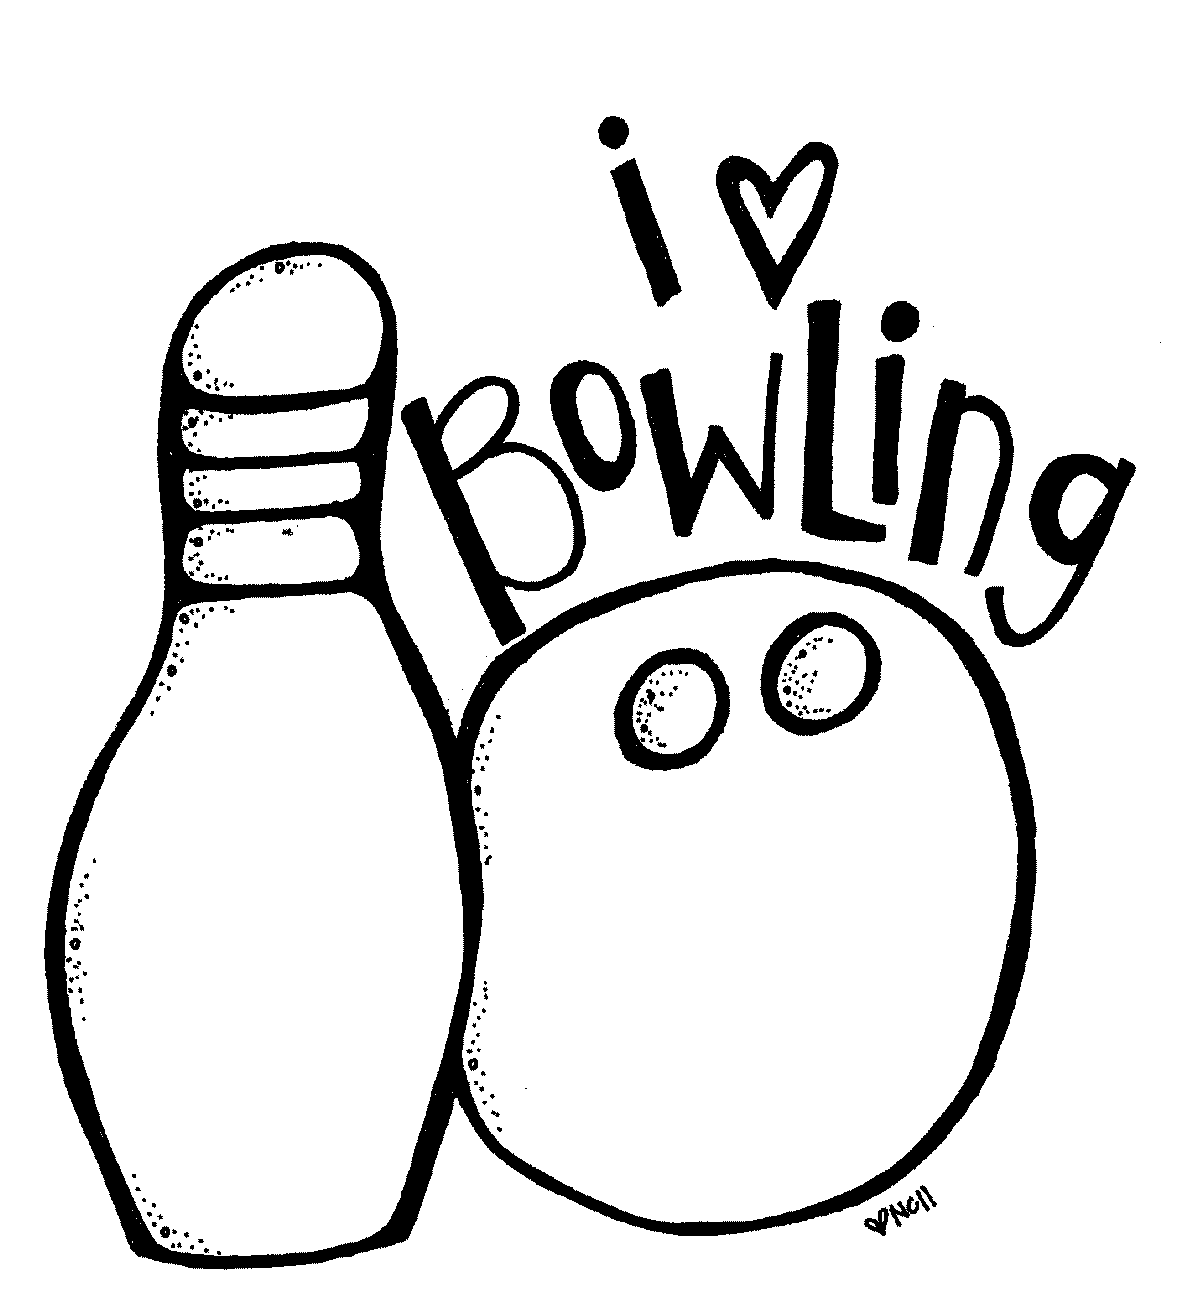 15 Bowling Coloring Page To Print